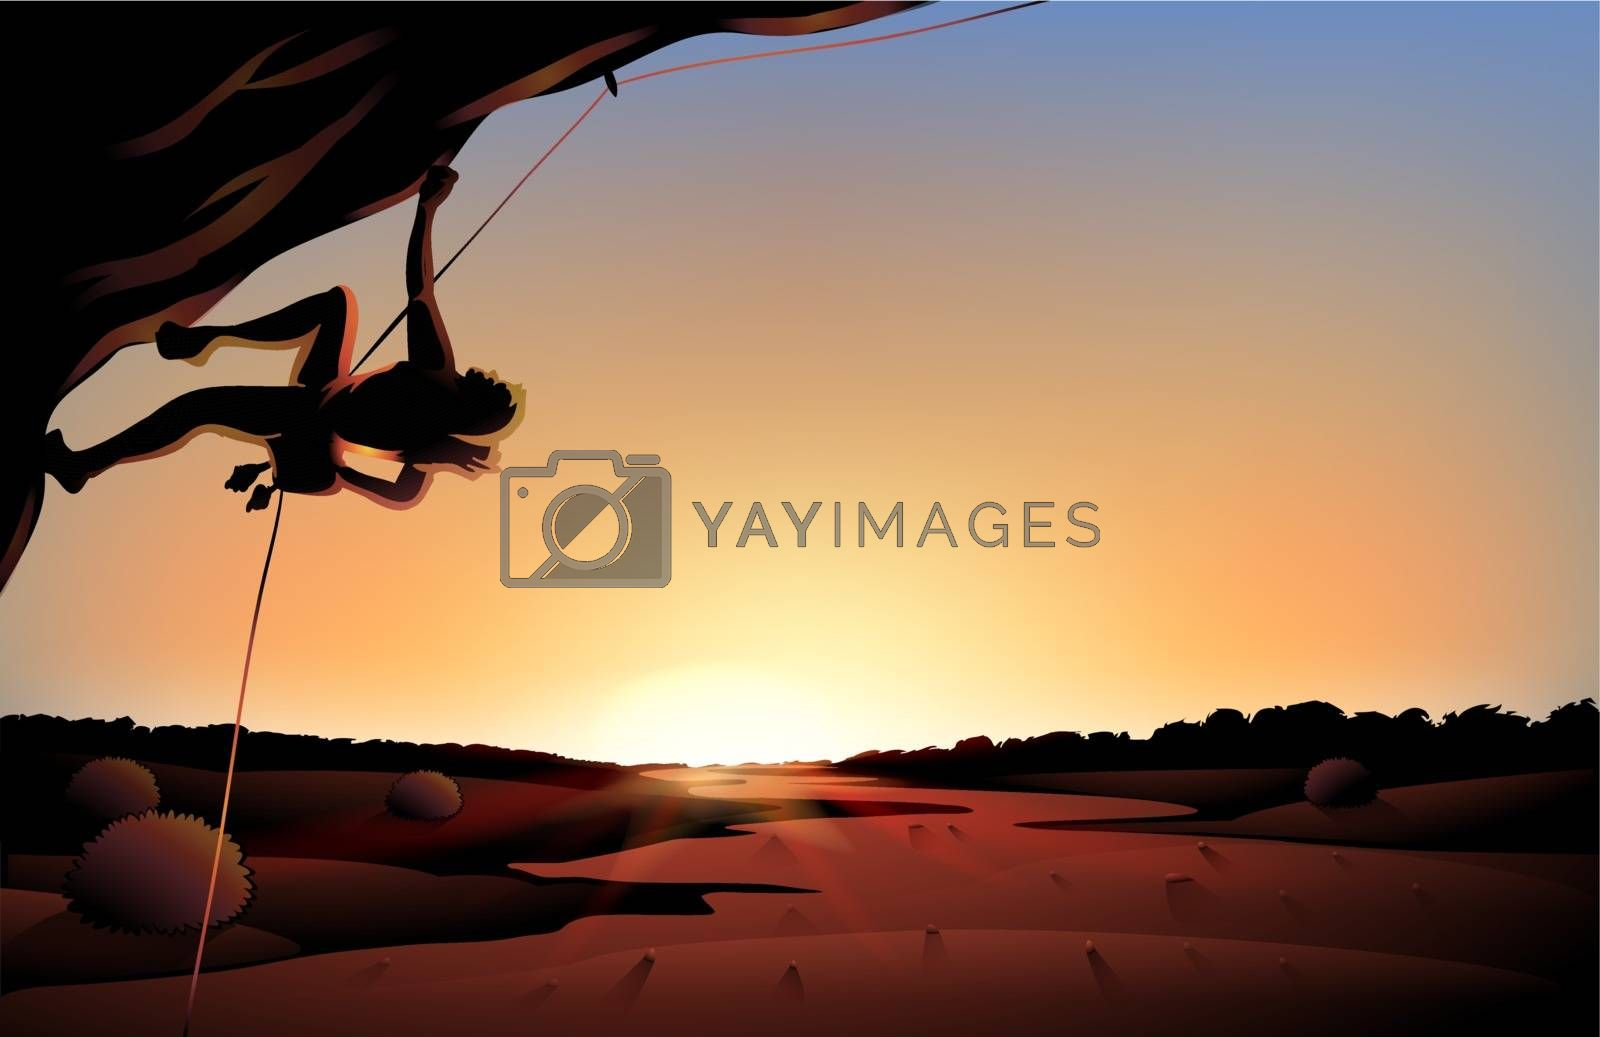 Illustration of the sunset view of the desert with a man climbing at the tree